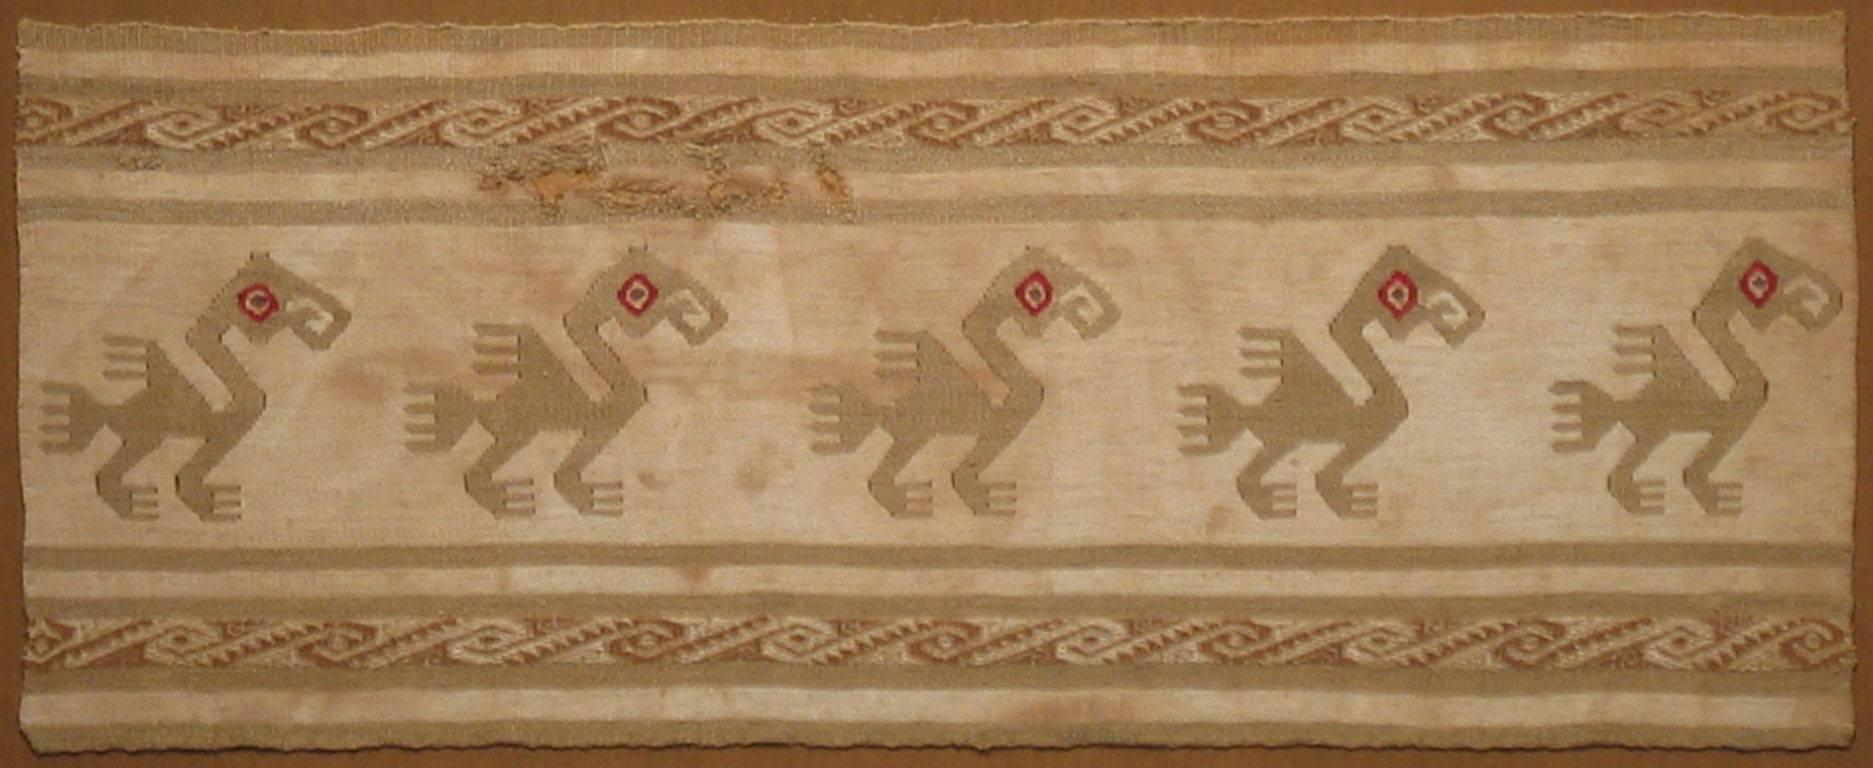 15th Century South American Textile